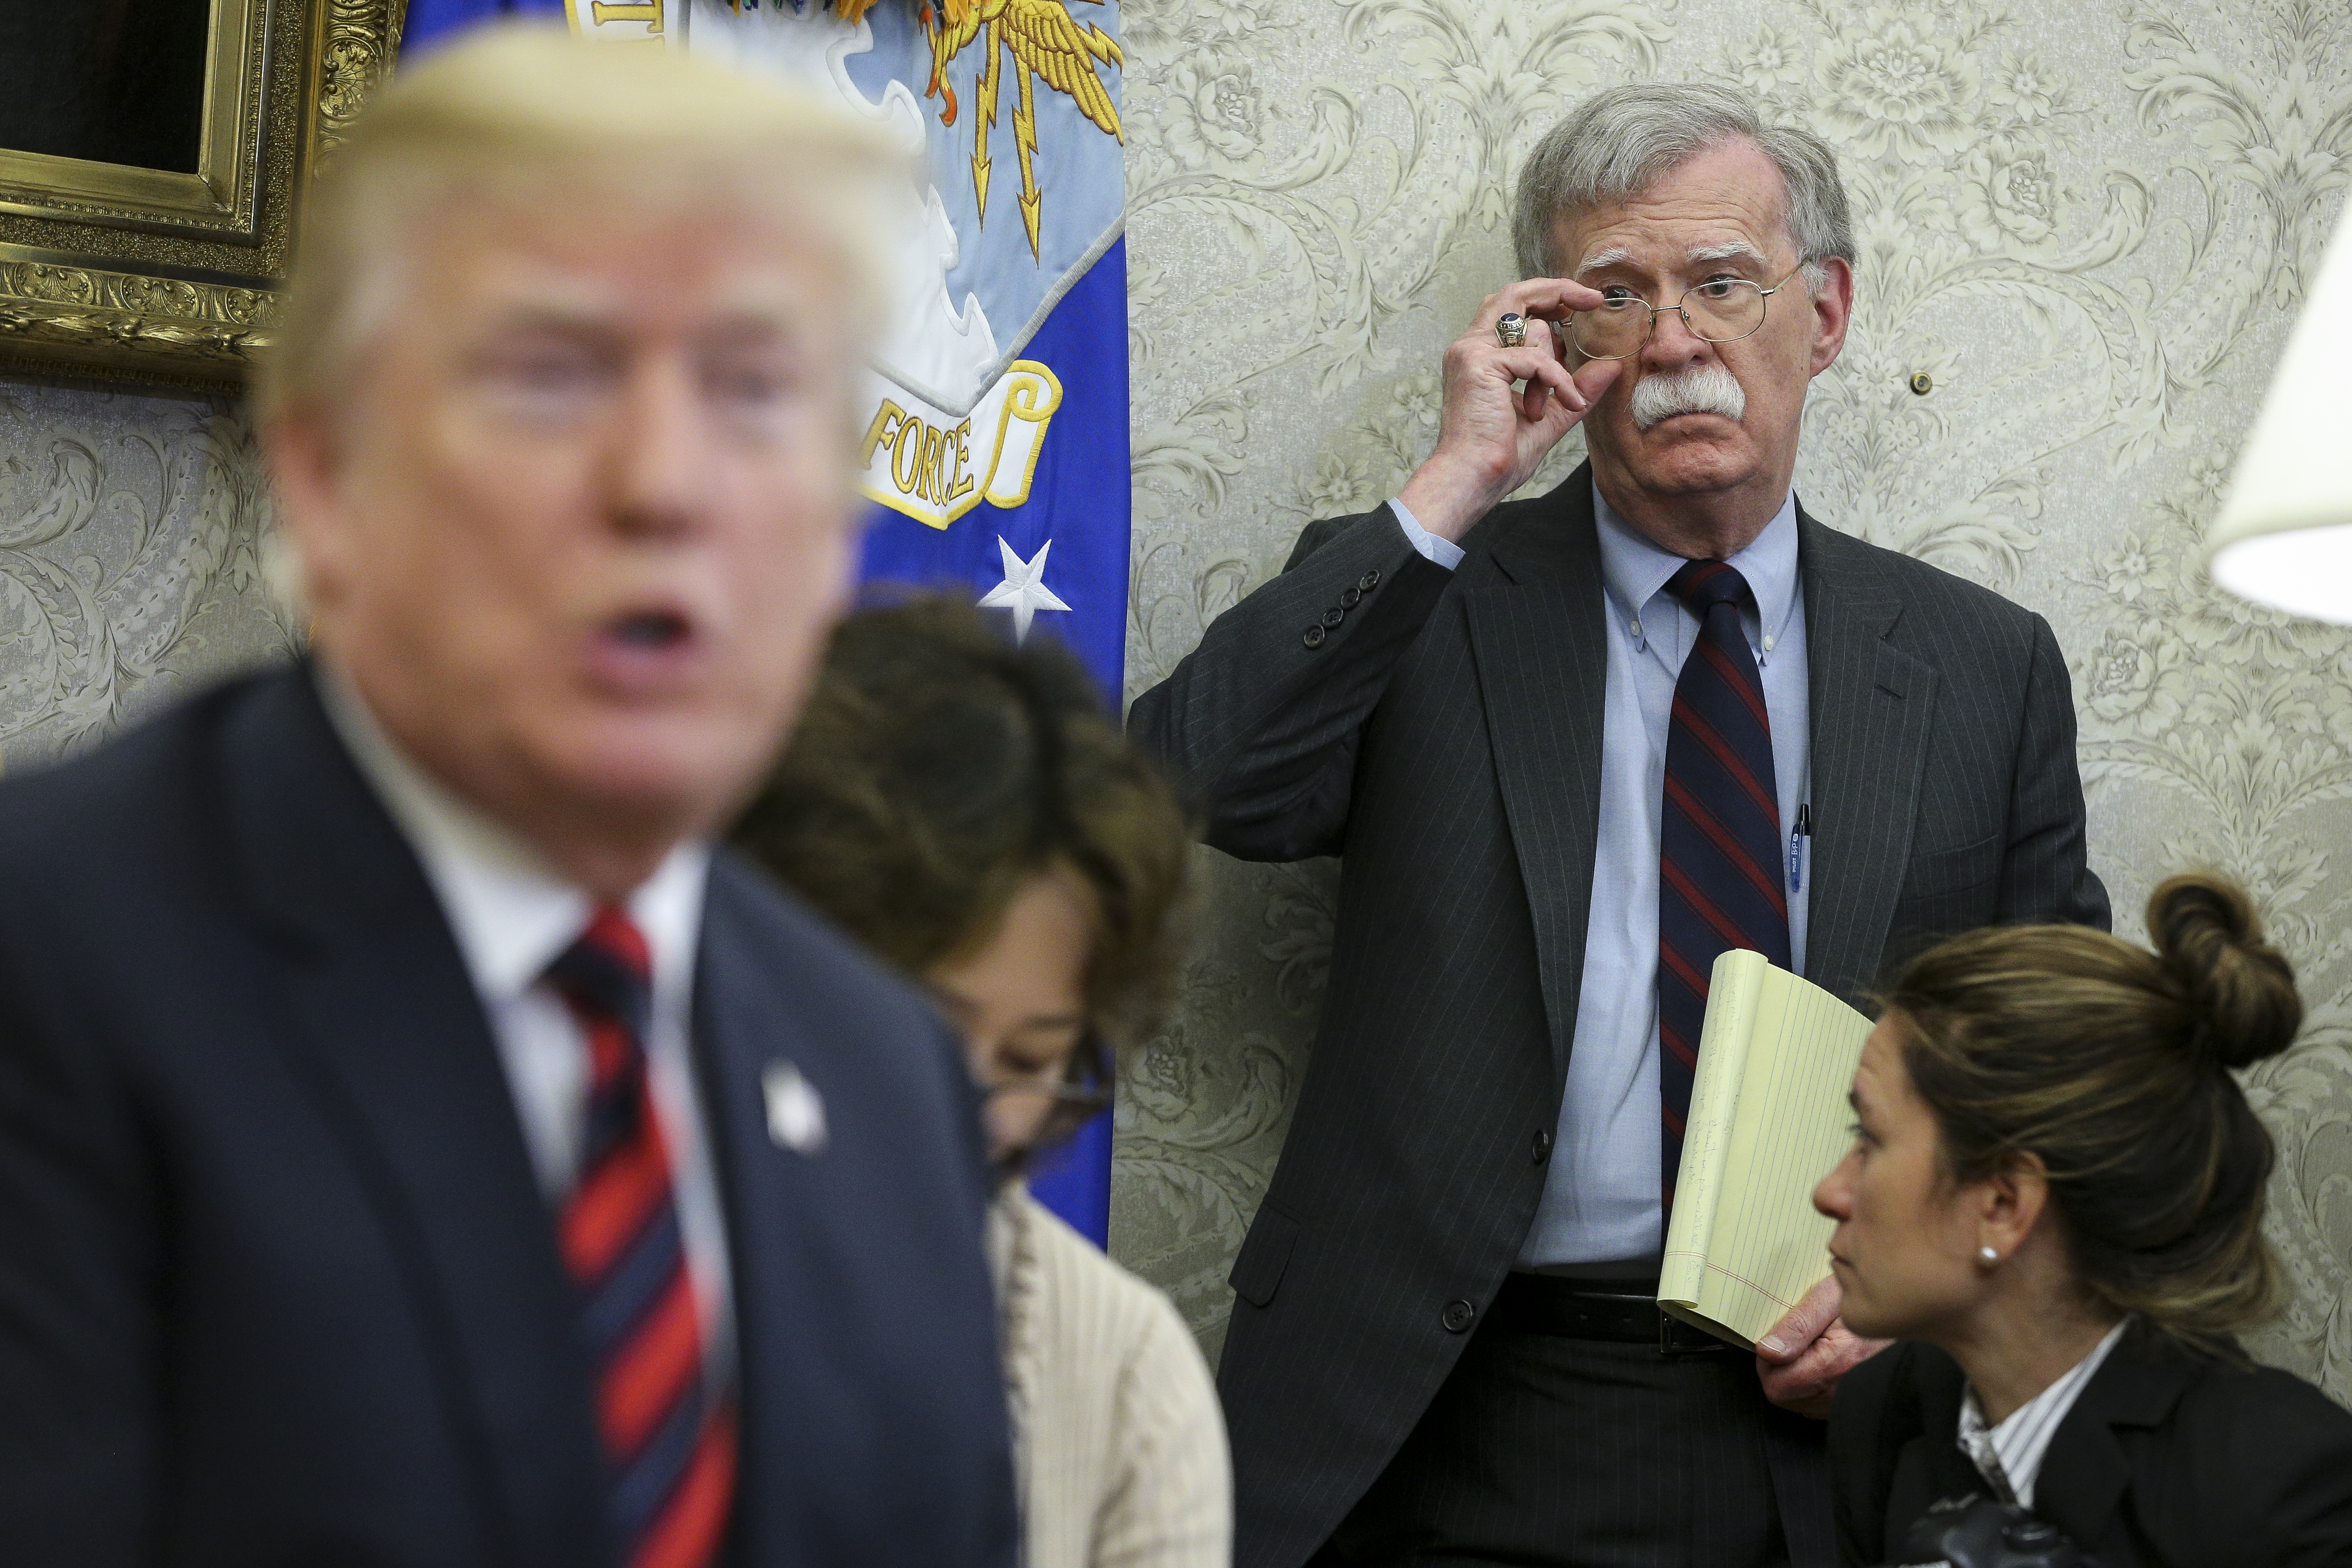 WASHINGTON, DC - MAY 22: US President Donald Trump speaks as National security advisor John Bolton listens during a meeting with South Korean President Moon Jae-in, in the Oval Office of the White House on May 22, 2018 in Washington DC. (Photo by Oliver Contreras-Pool/Getty Images)